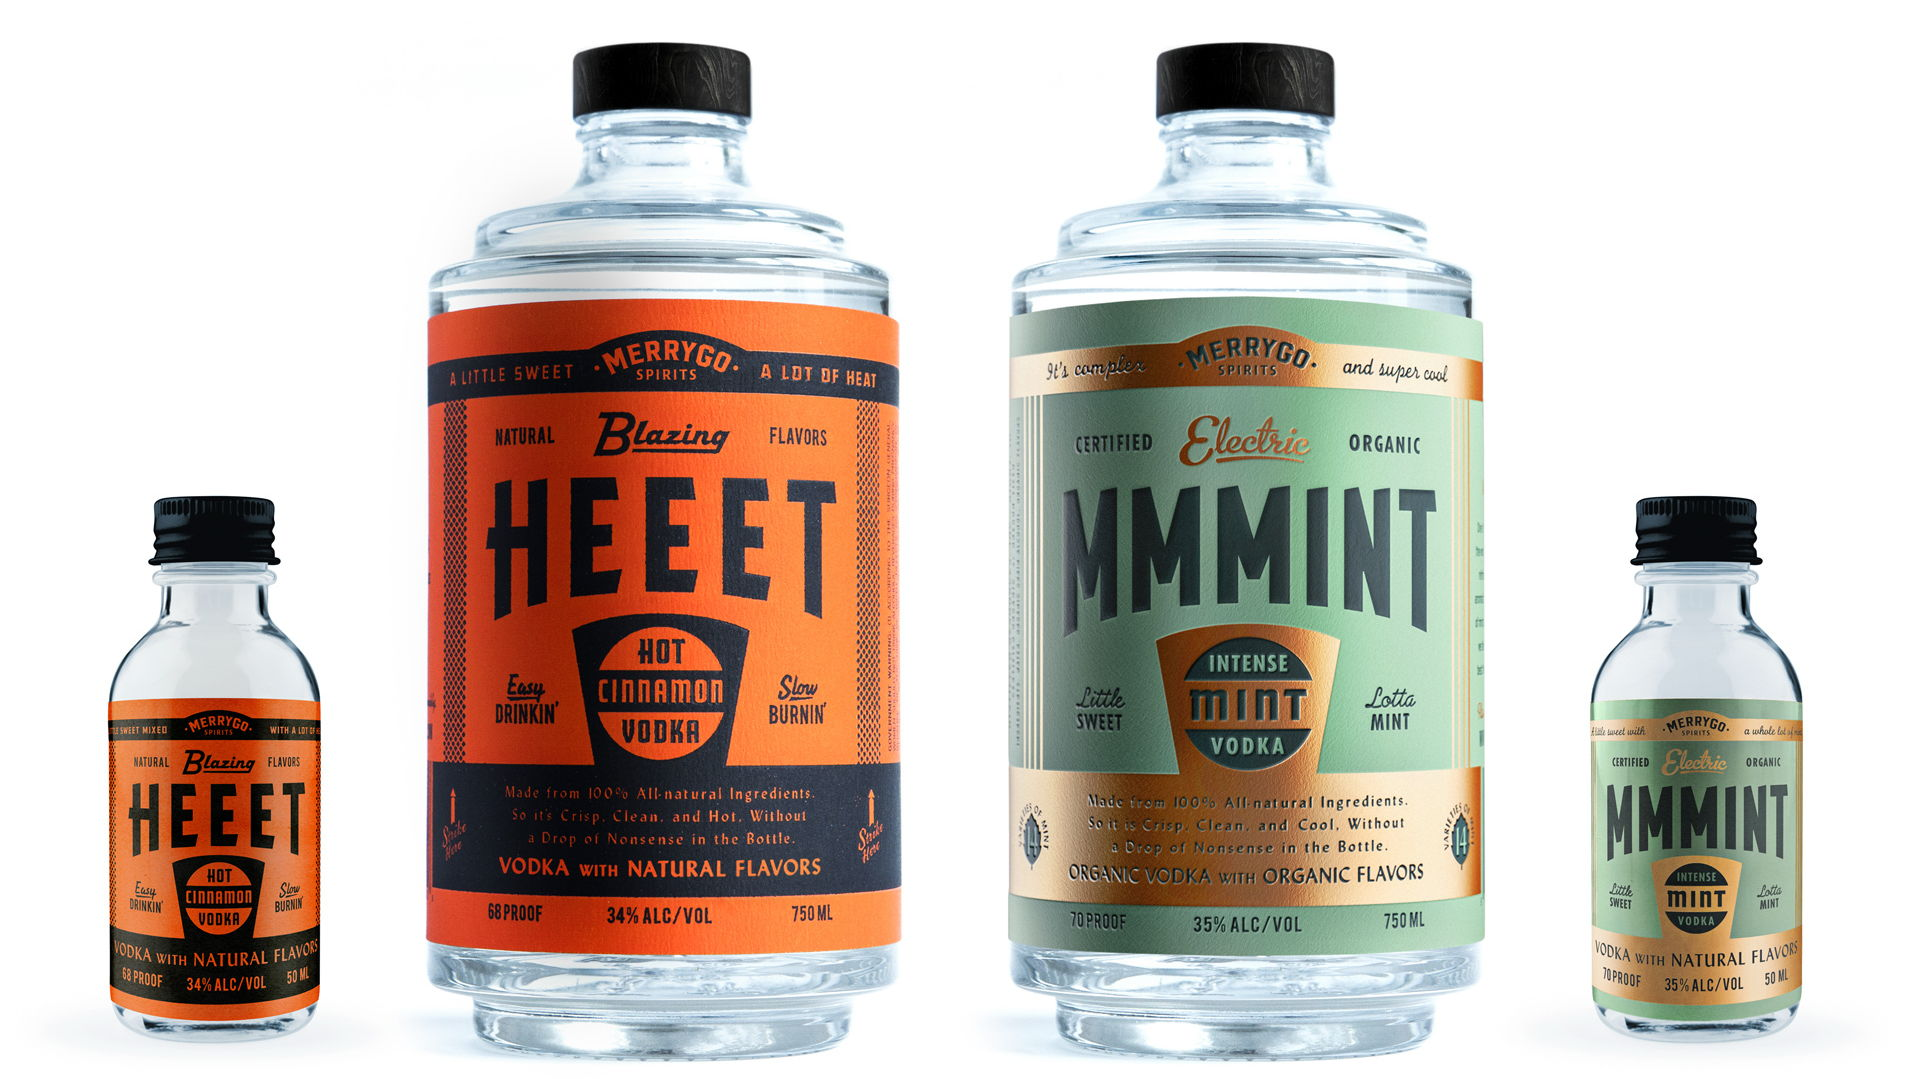 Canales & Co. Draws Inspiration From Fuel Bottles And Matchbooks For MerryGO's Vodka Bottles